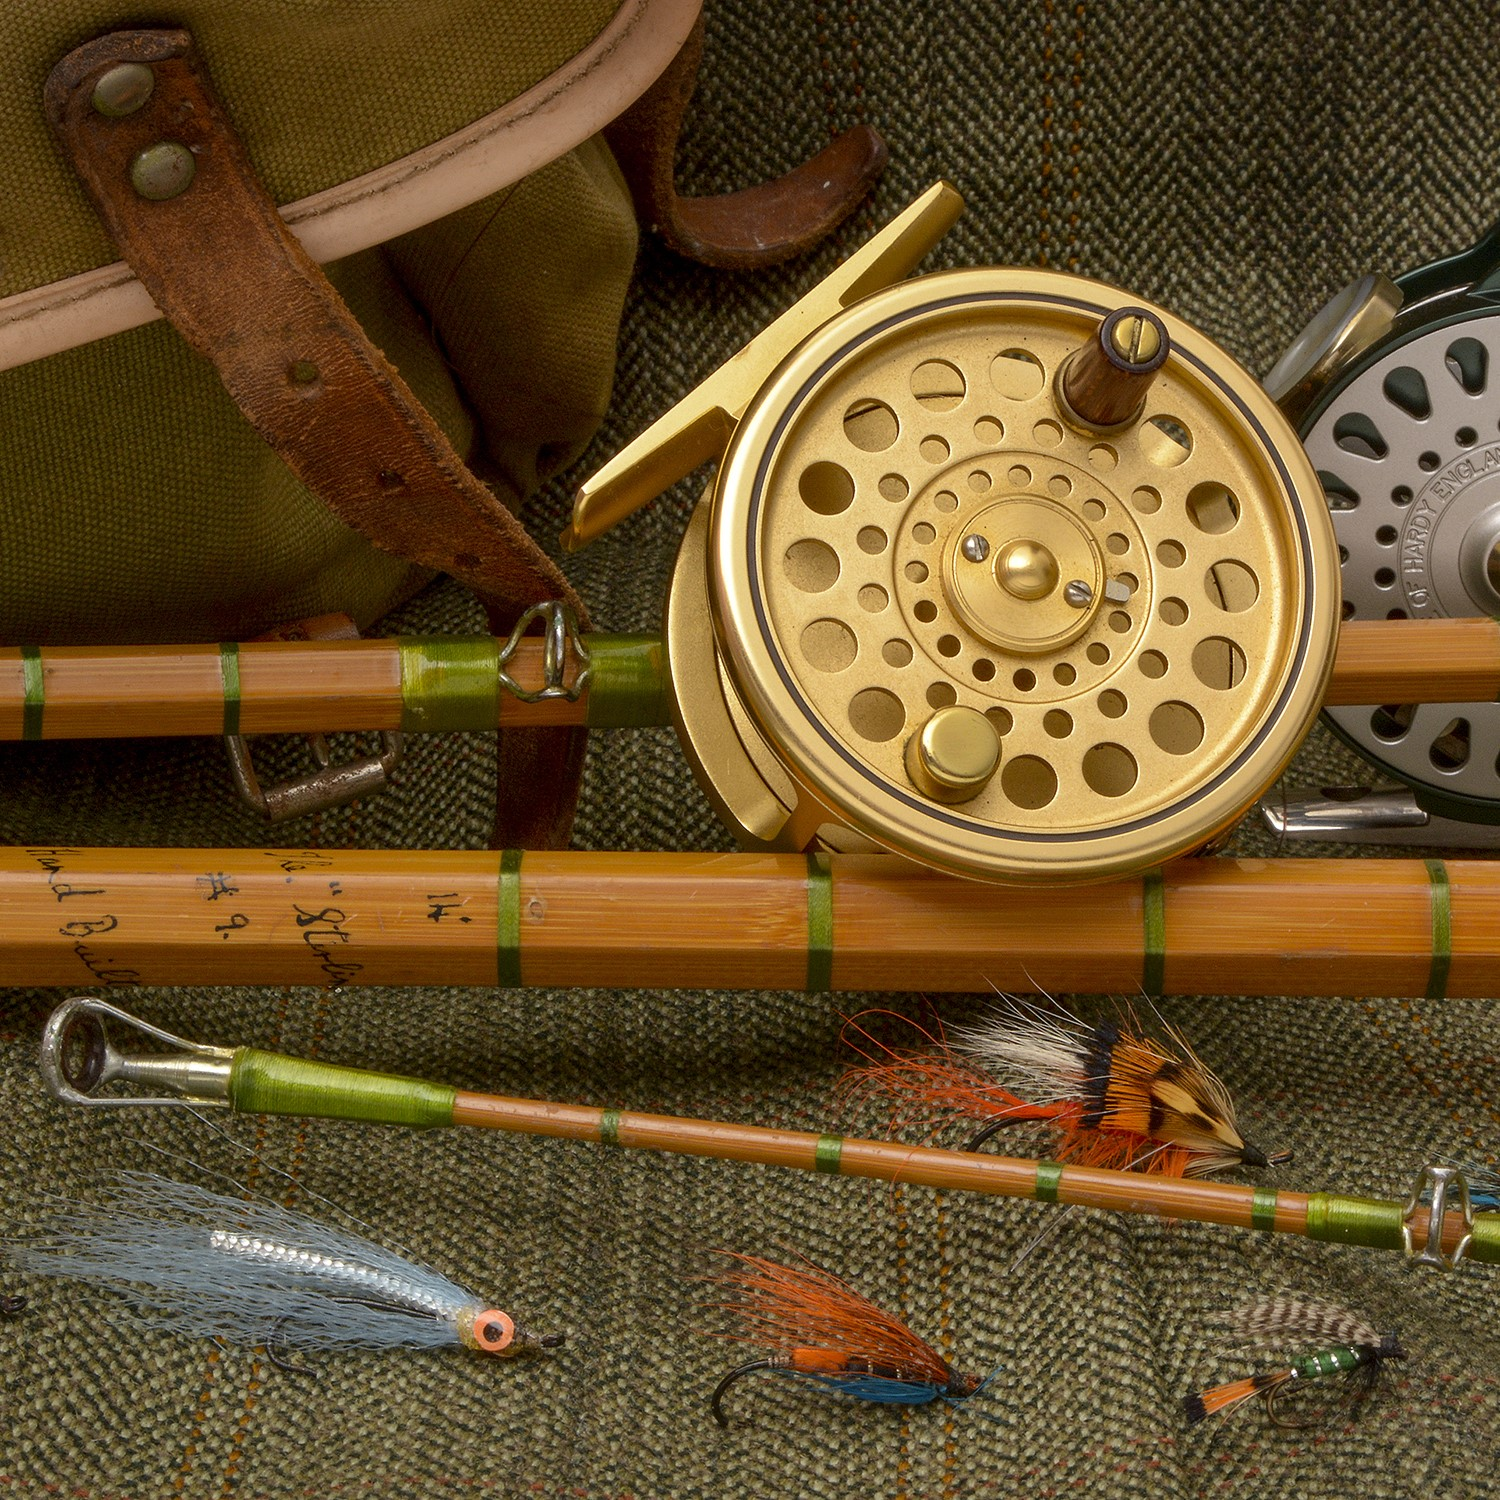 The Sporting Sale including Fishing Tackle